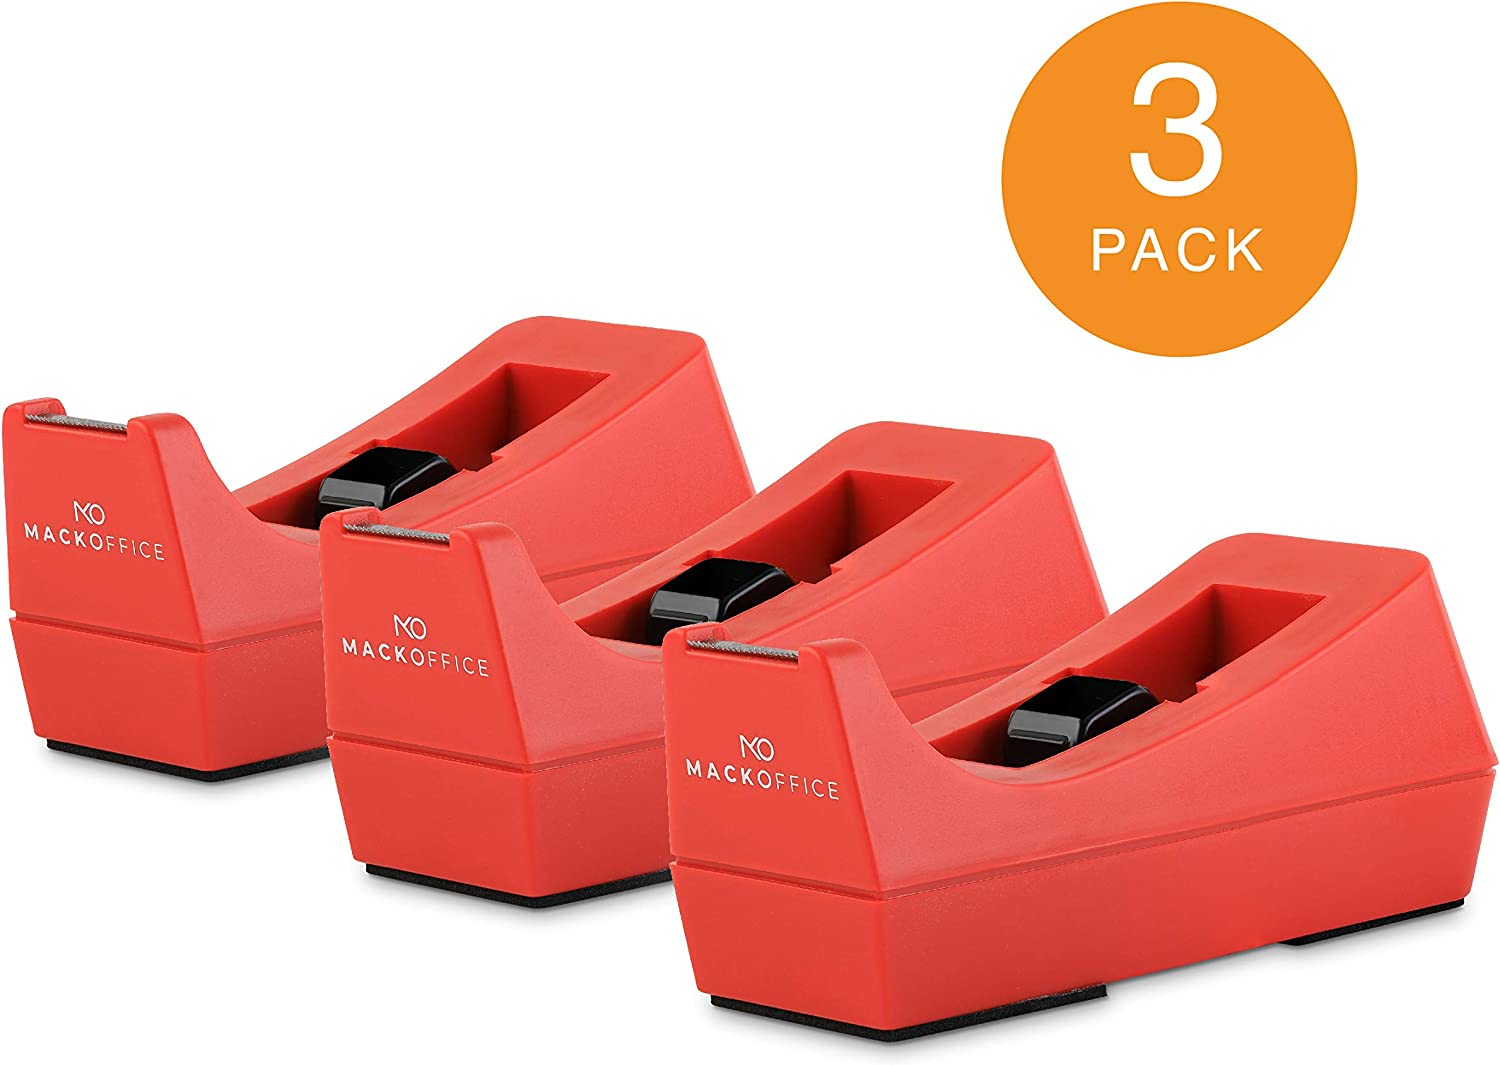 MackOffice Desk Tape Dispenser (Red, 3 Pack) Weighted core and Non-Skid Rubber Base to Keep Dispenser in Place. one-Hand Dispensing for 1/2 or 3/4 Inch Tape Roll up to 1500 in Long Office School